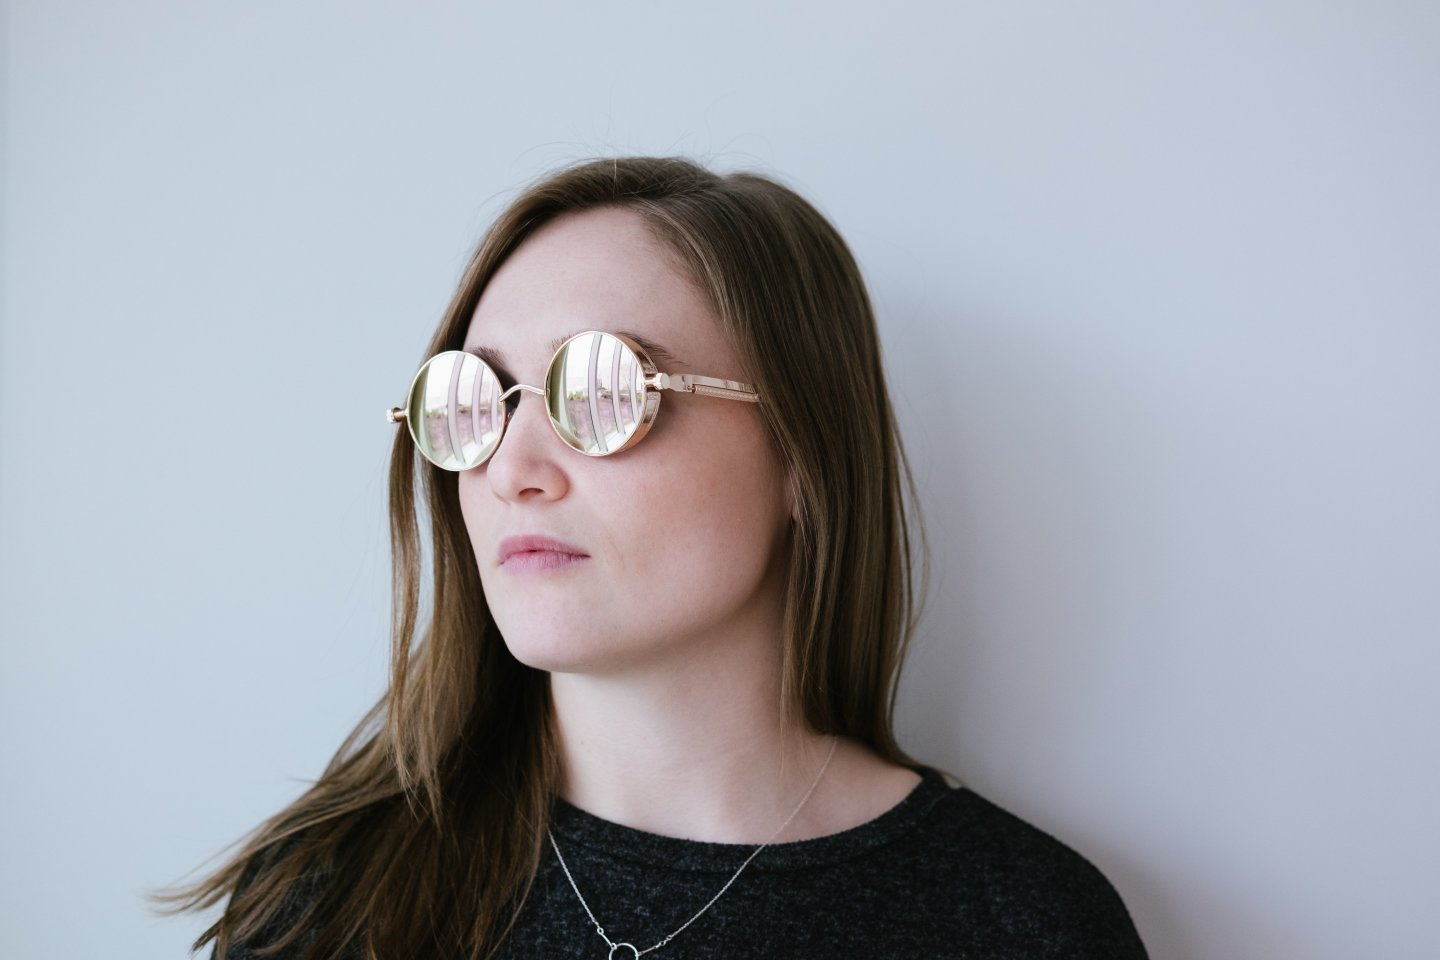 woman sunglasses looking to the side